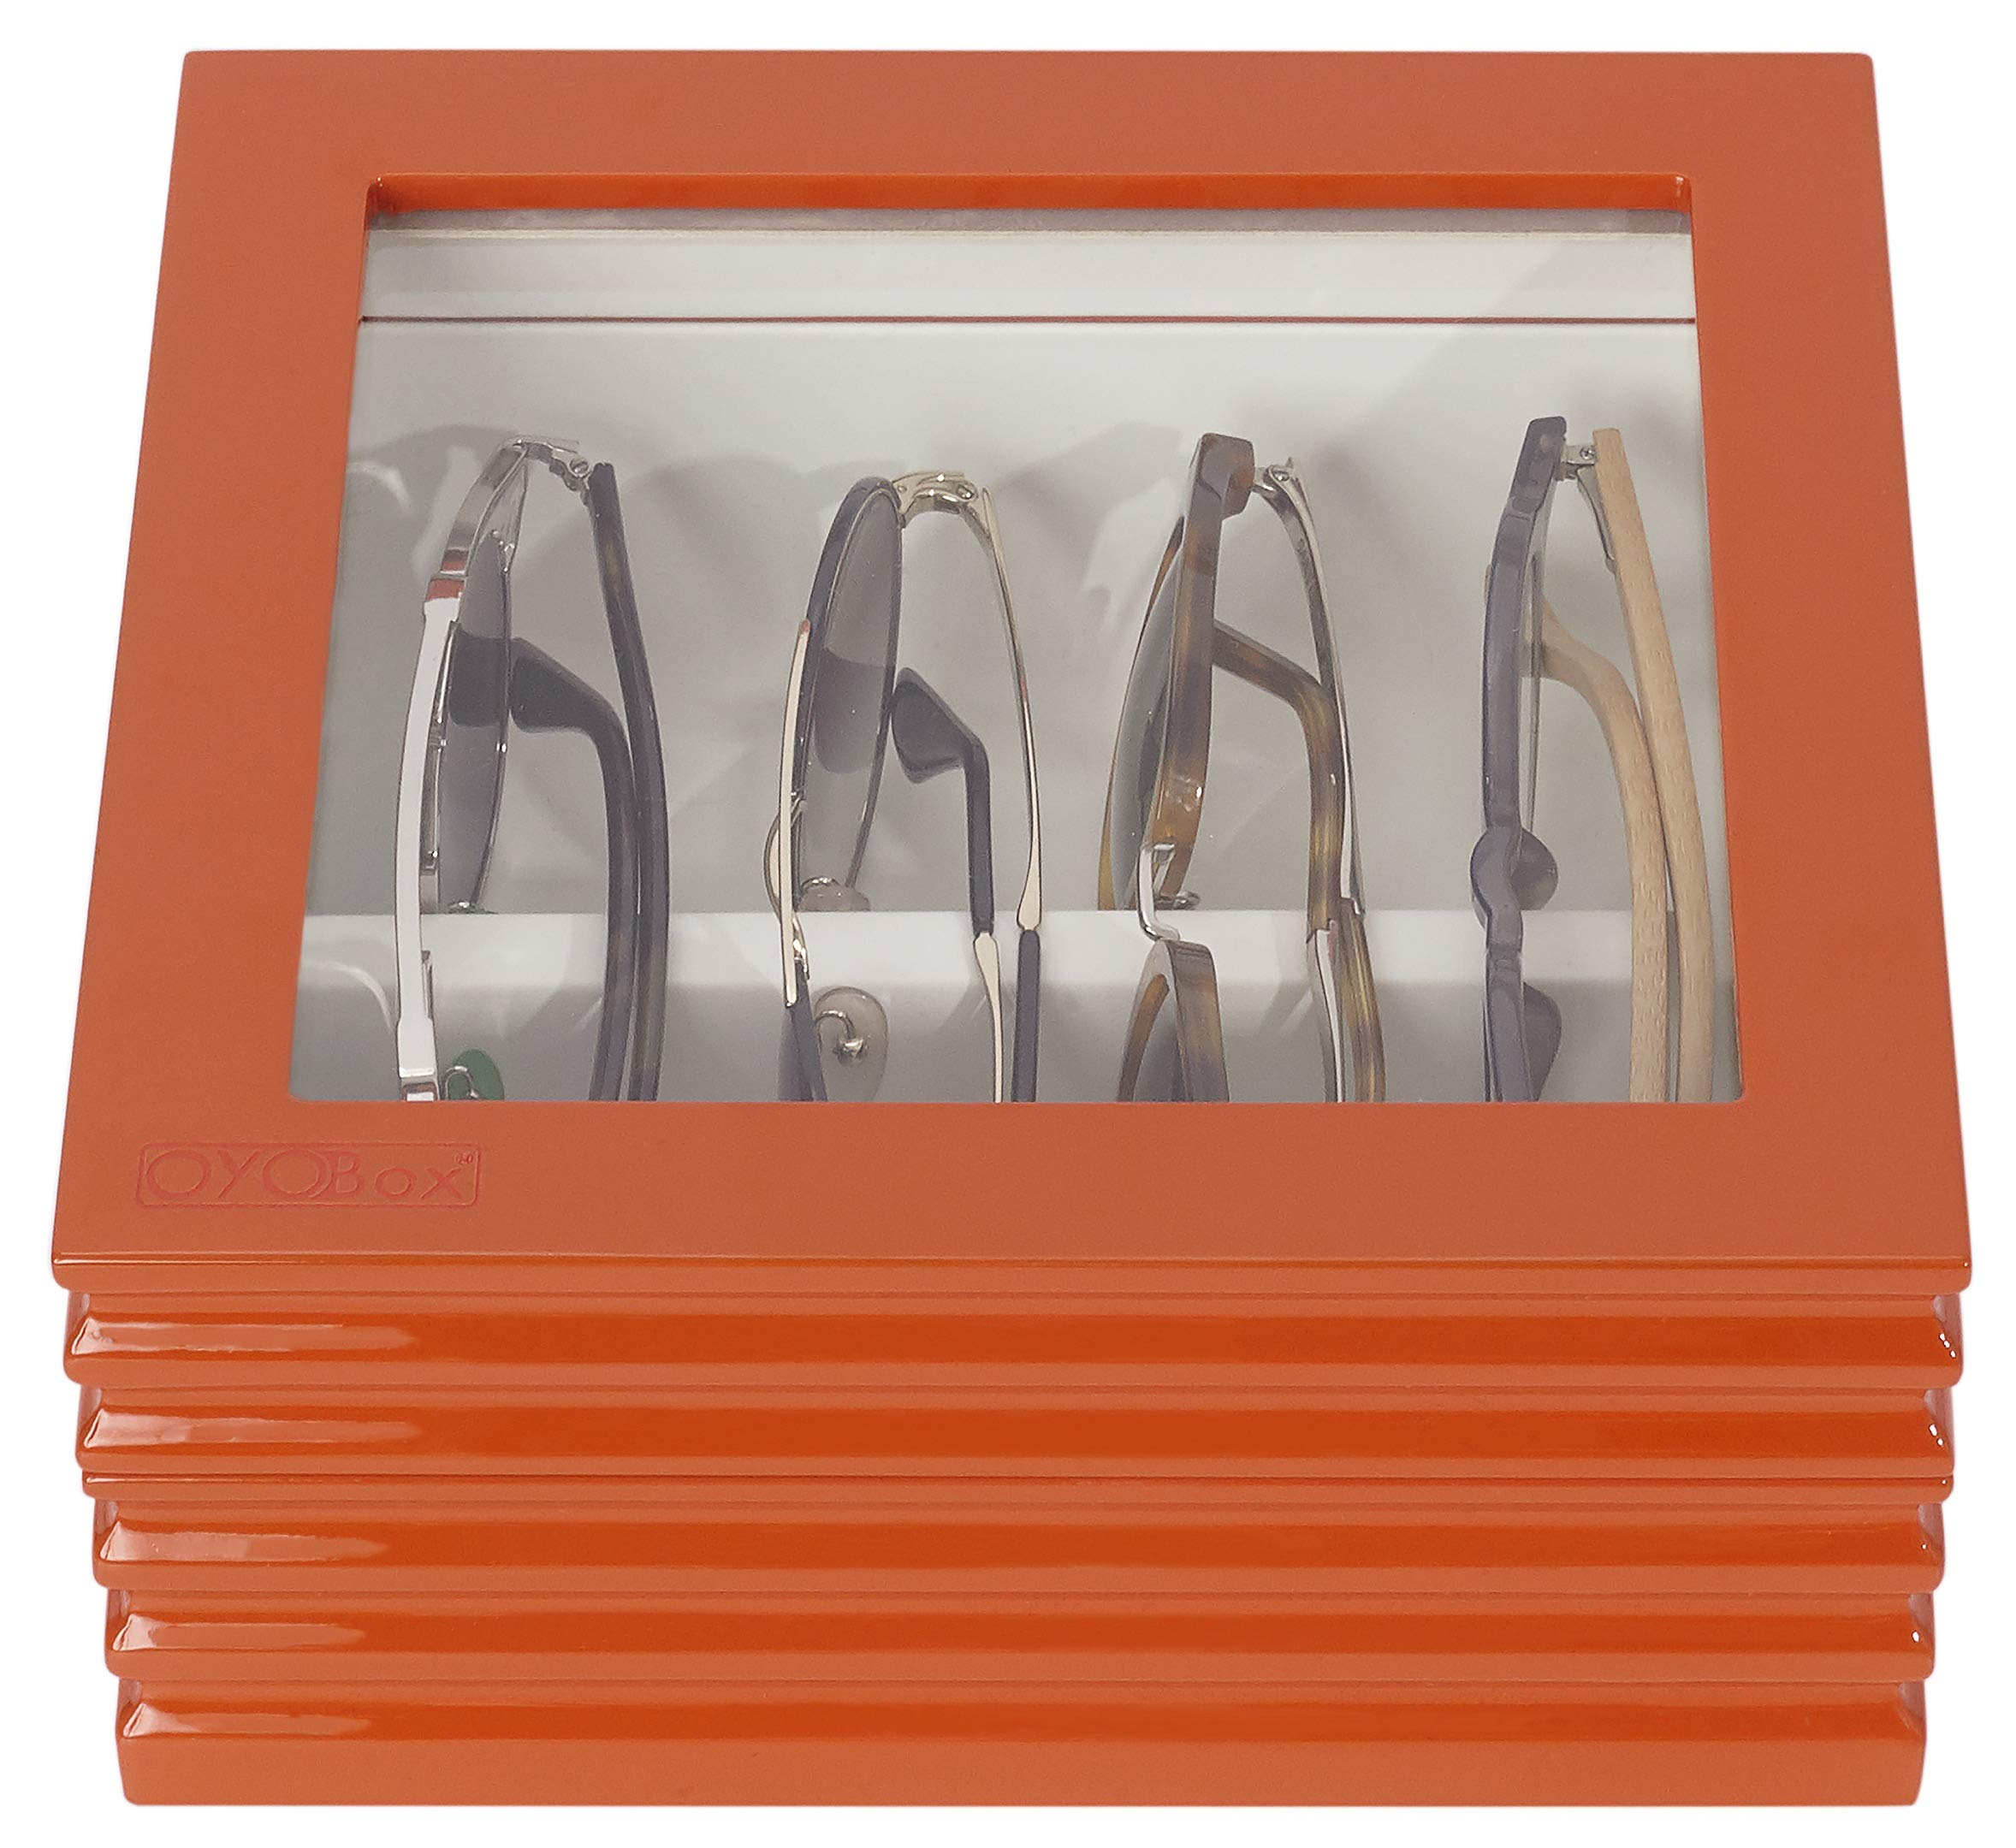 OYOBox Maxi & Mini Luxury Eyewear Organizer, Lacquered Wood Box for Multiple Glasses + Sunglasses, Wave Collection (Orange Mini) by OYOBox